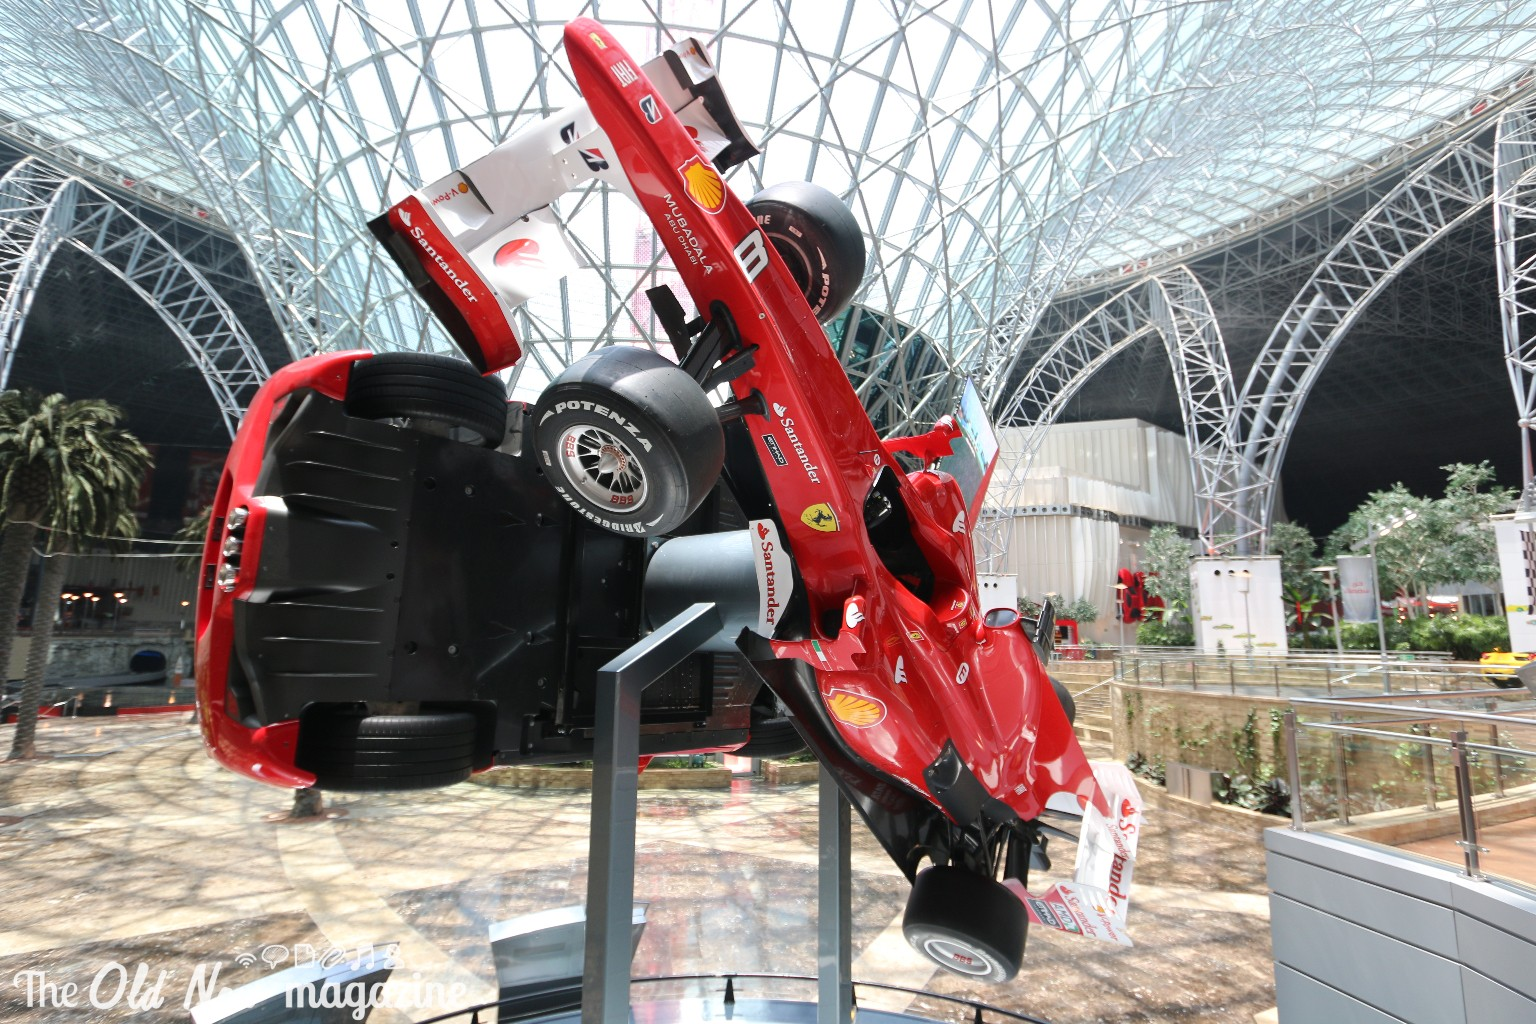 Abu Dhabi Ferrari World THEOLDNOW (14)